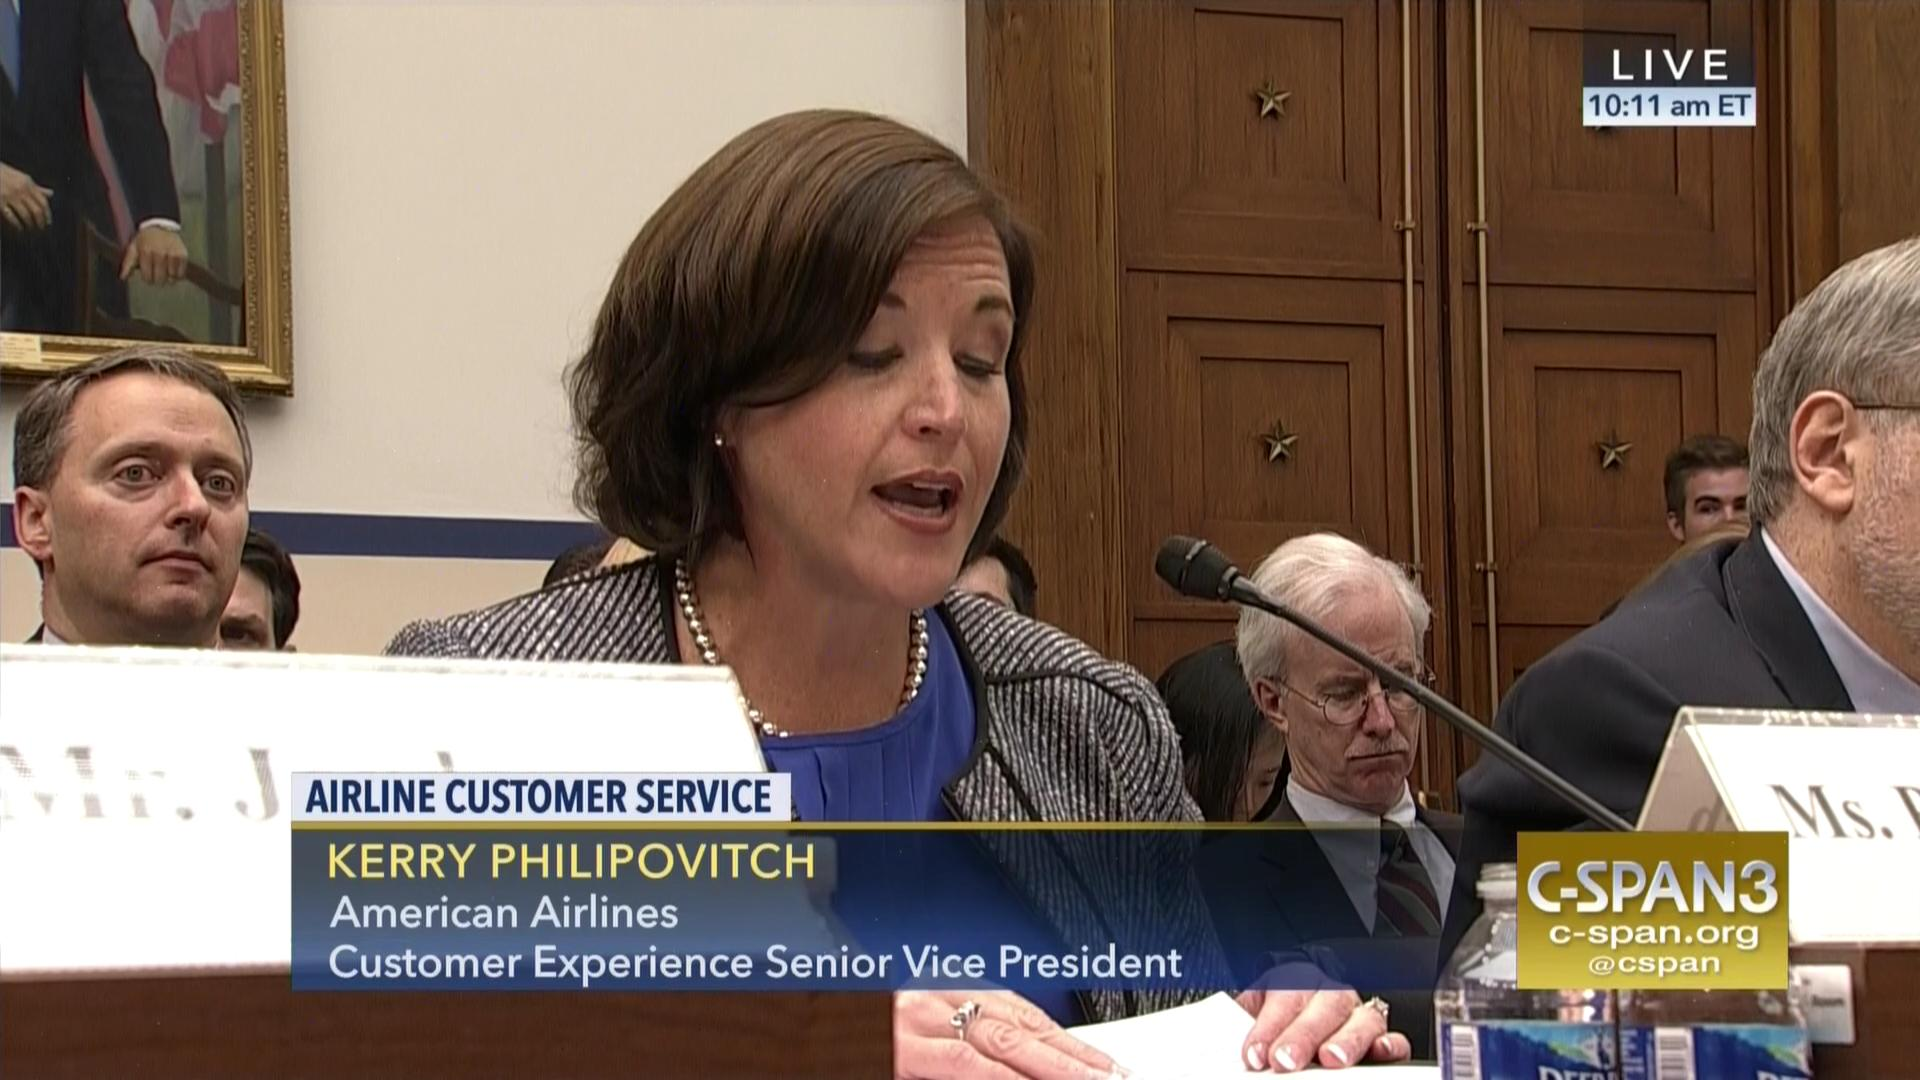 American Airlines Executive testifies before Congress.